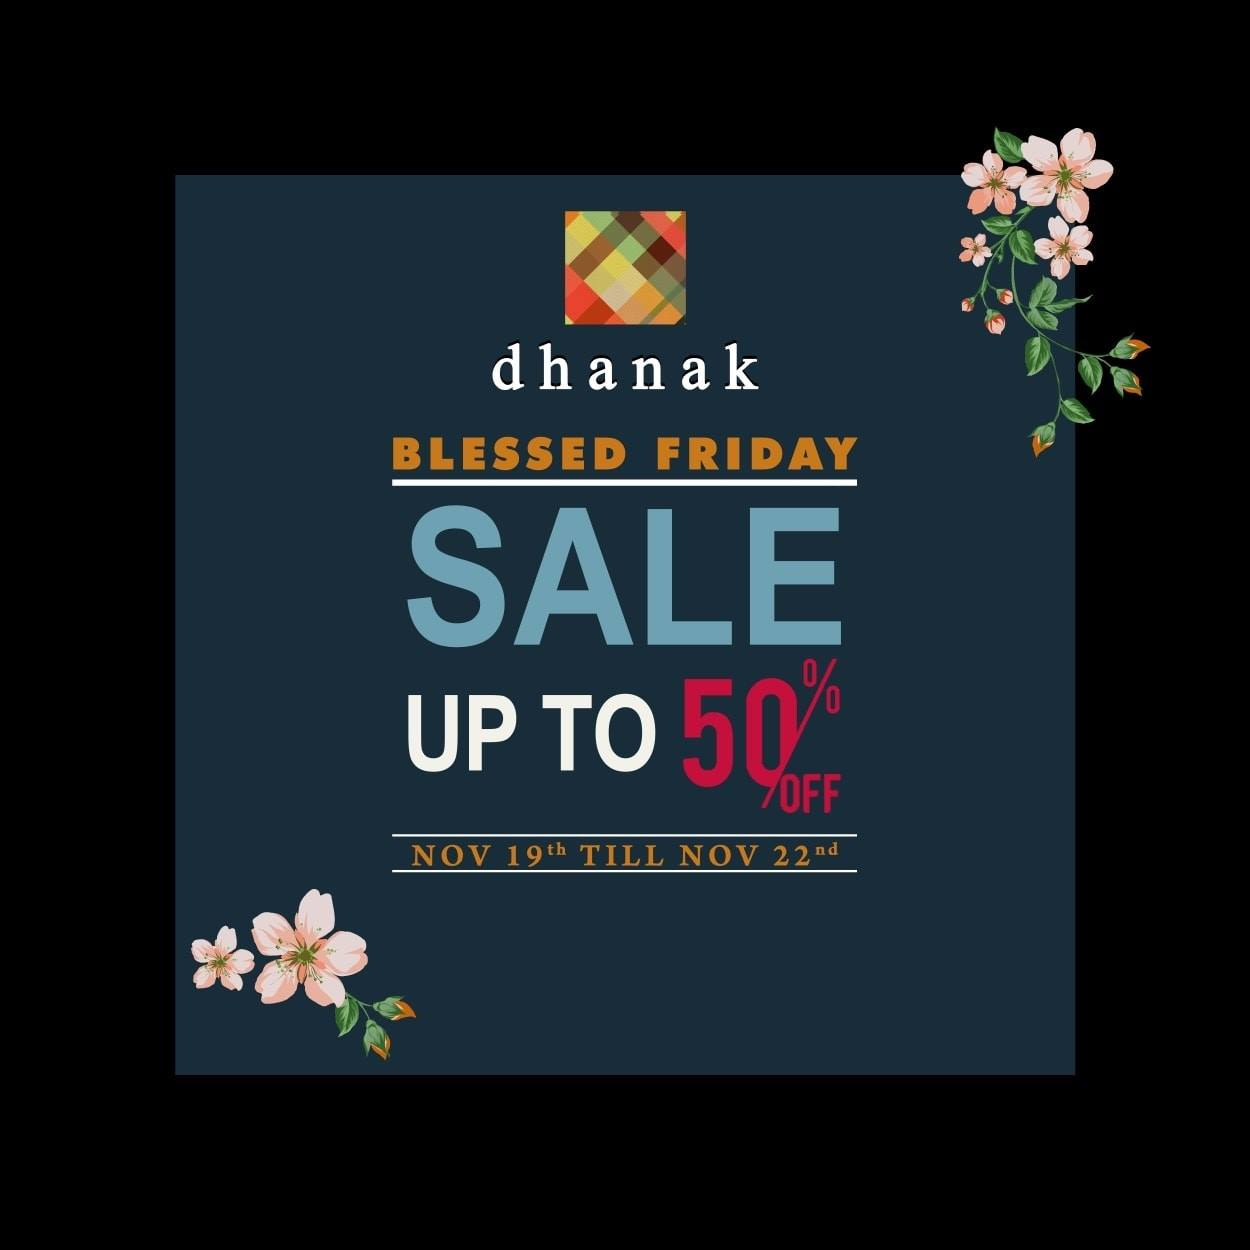 Dhanak - Blessed Friday Sale